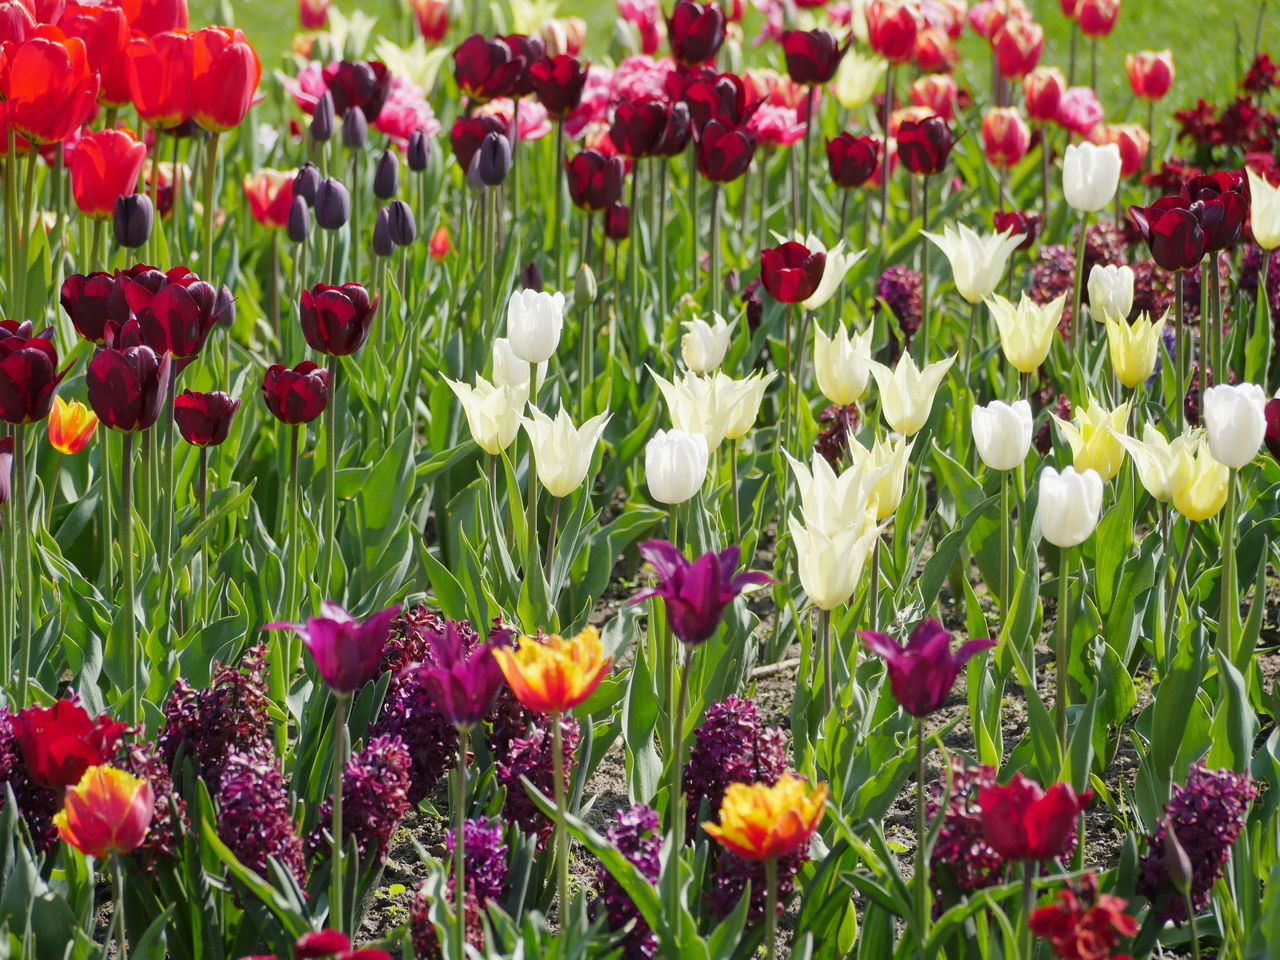 flower, freshness, growth, nature, fragility, beauty in nature, petal, tulip, plant, abundance, no people, field, flower head, red, day, green color, outdoors, flowerbed, purple, blooming, springtime, poppy, full frame, backgrounds, multi colored, close-up, crocus